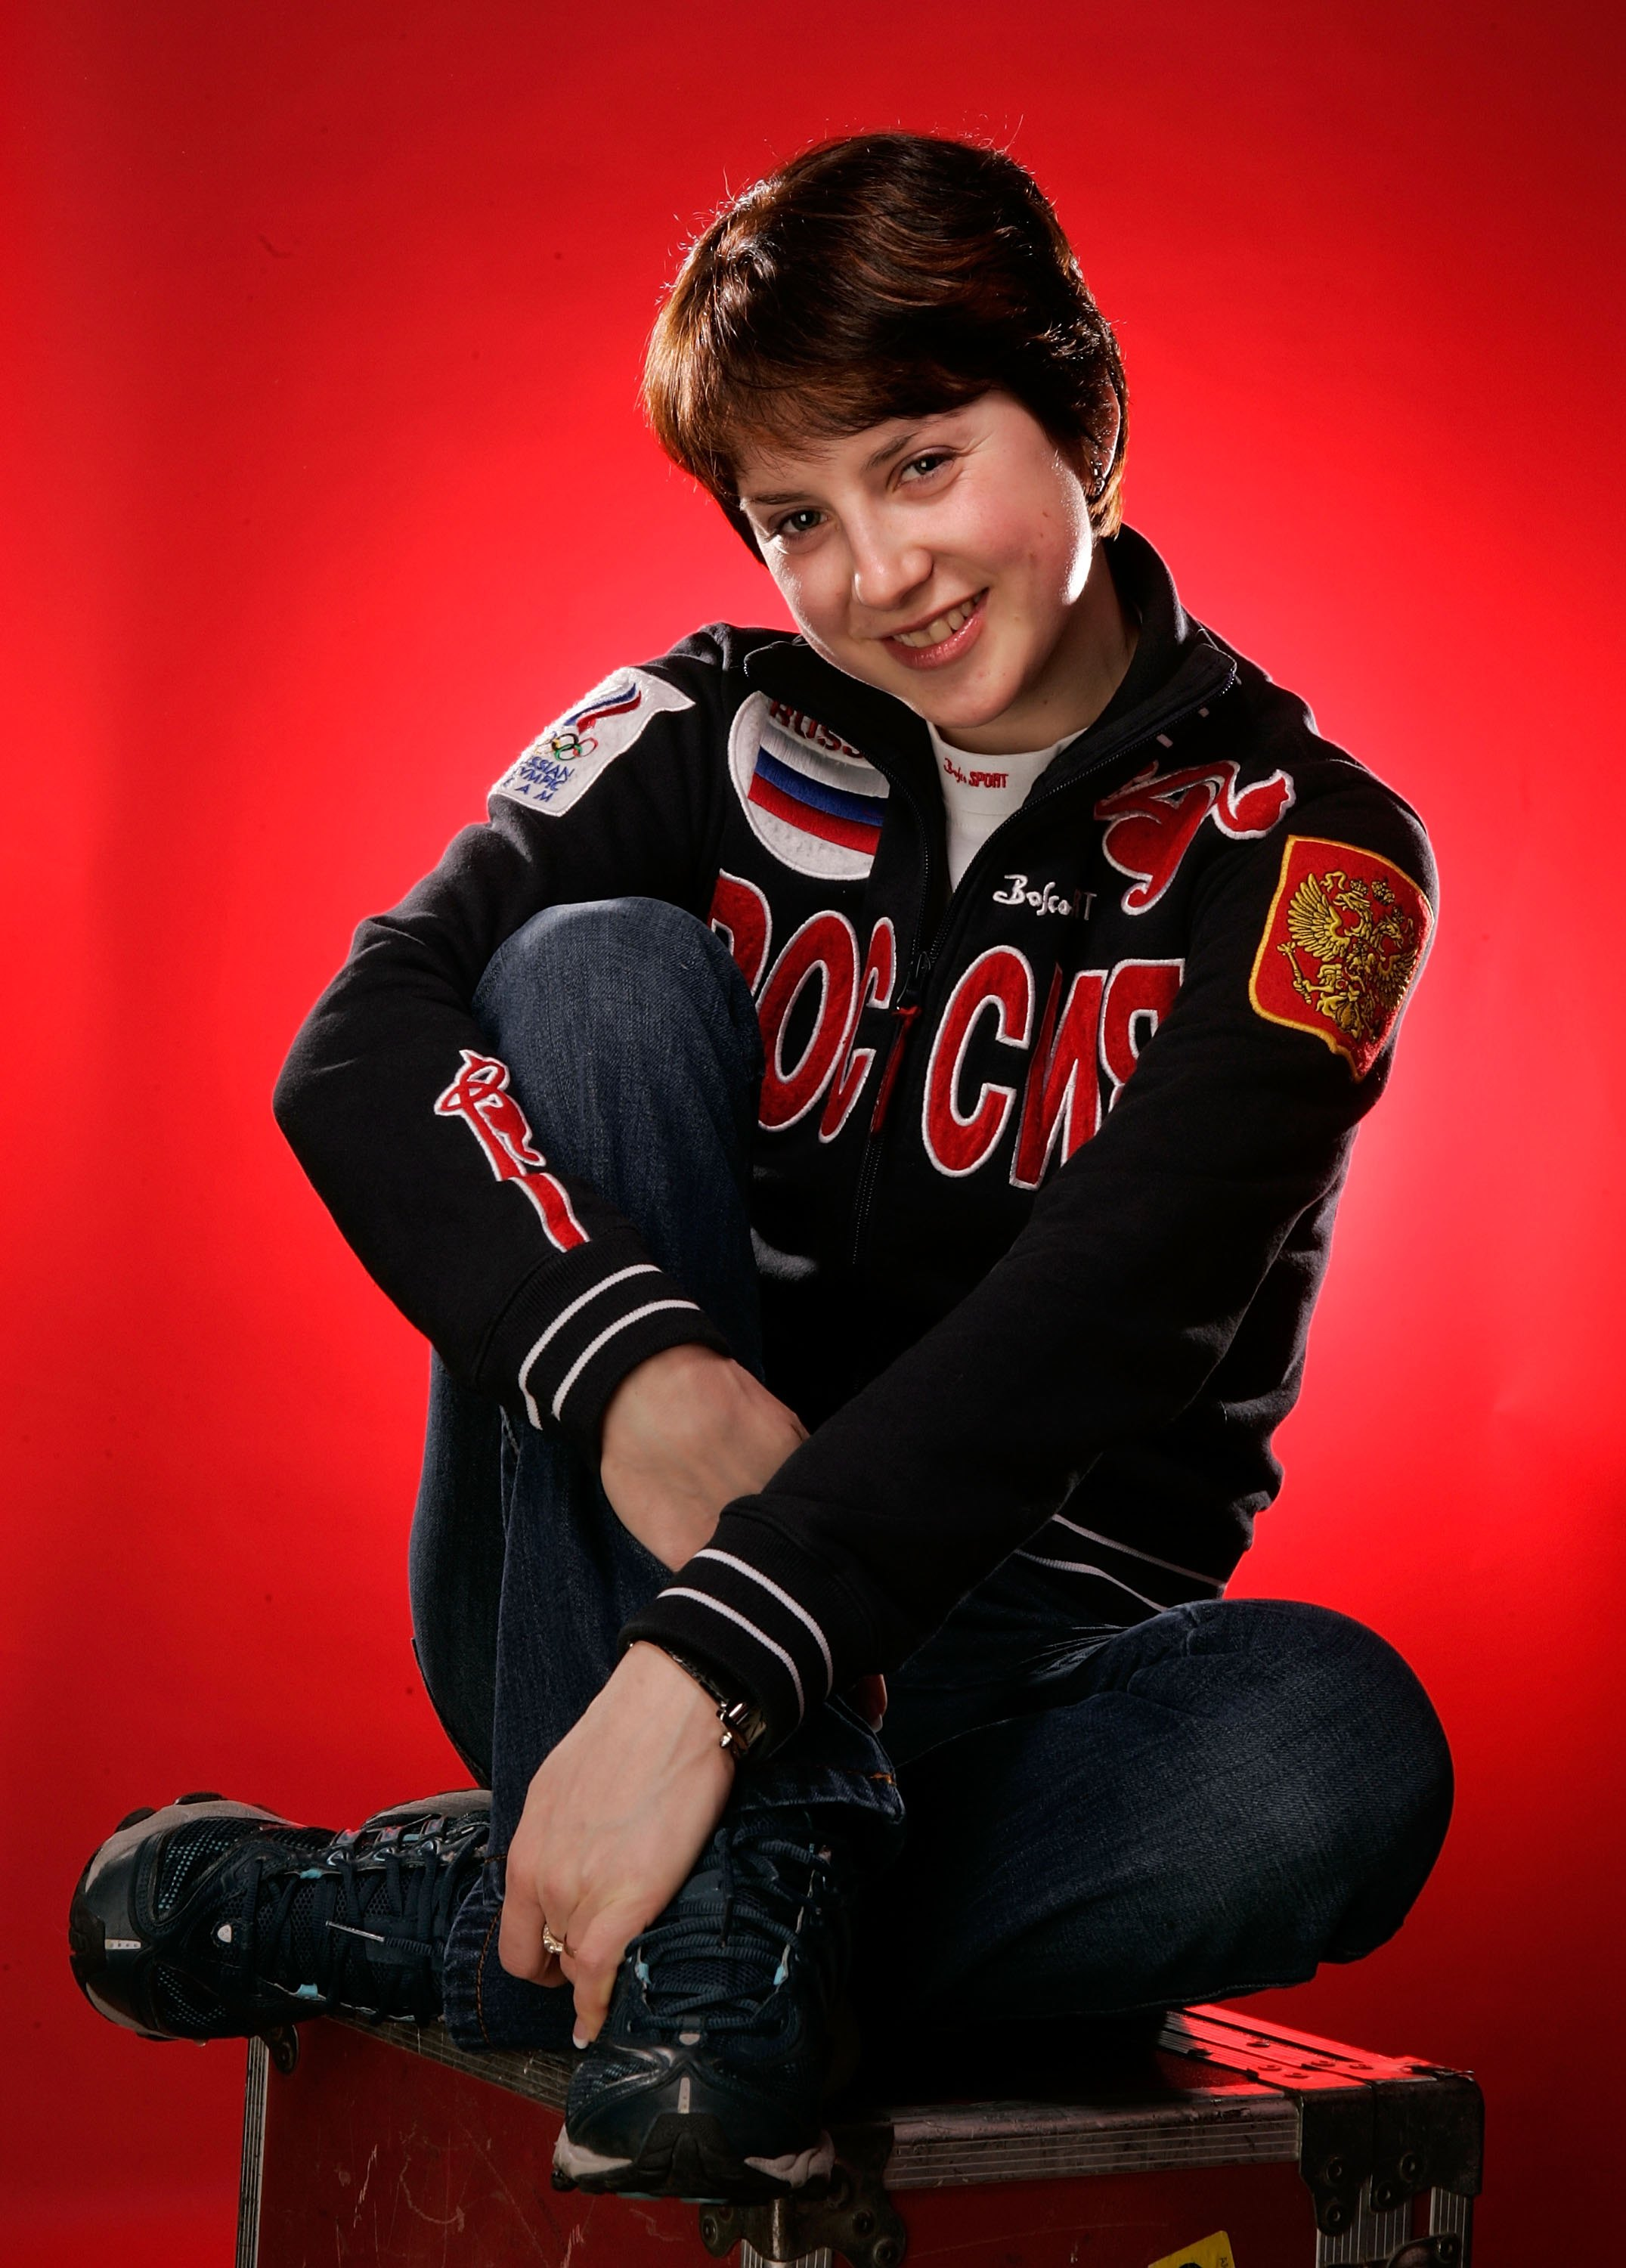 TURIN - FEBRUARY 24:  (US TV OUT)  Russian figure skater Irina Slutskaya poses for a photo after appearing on NBC's Today Show during the Turin 2006 Winter Olympic Games February 24, 2006 in Turin, Italy. Slutskaya won bronze in Women's figure skating.  (